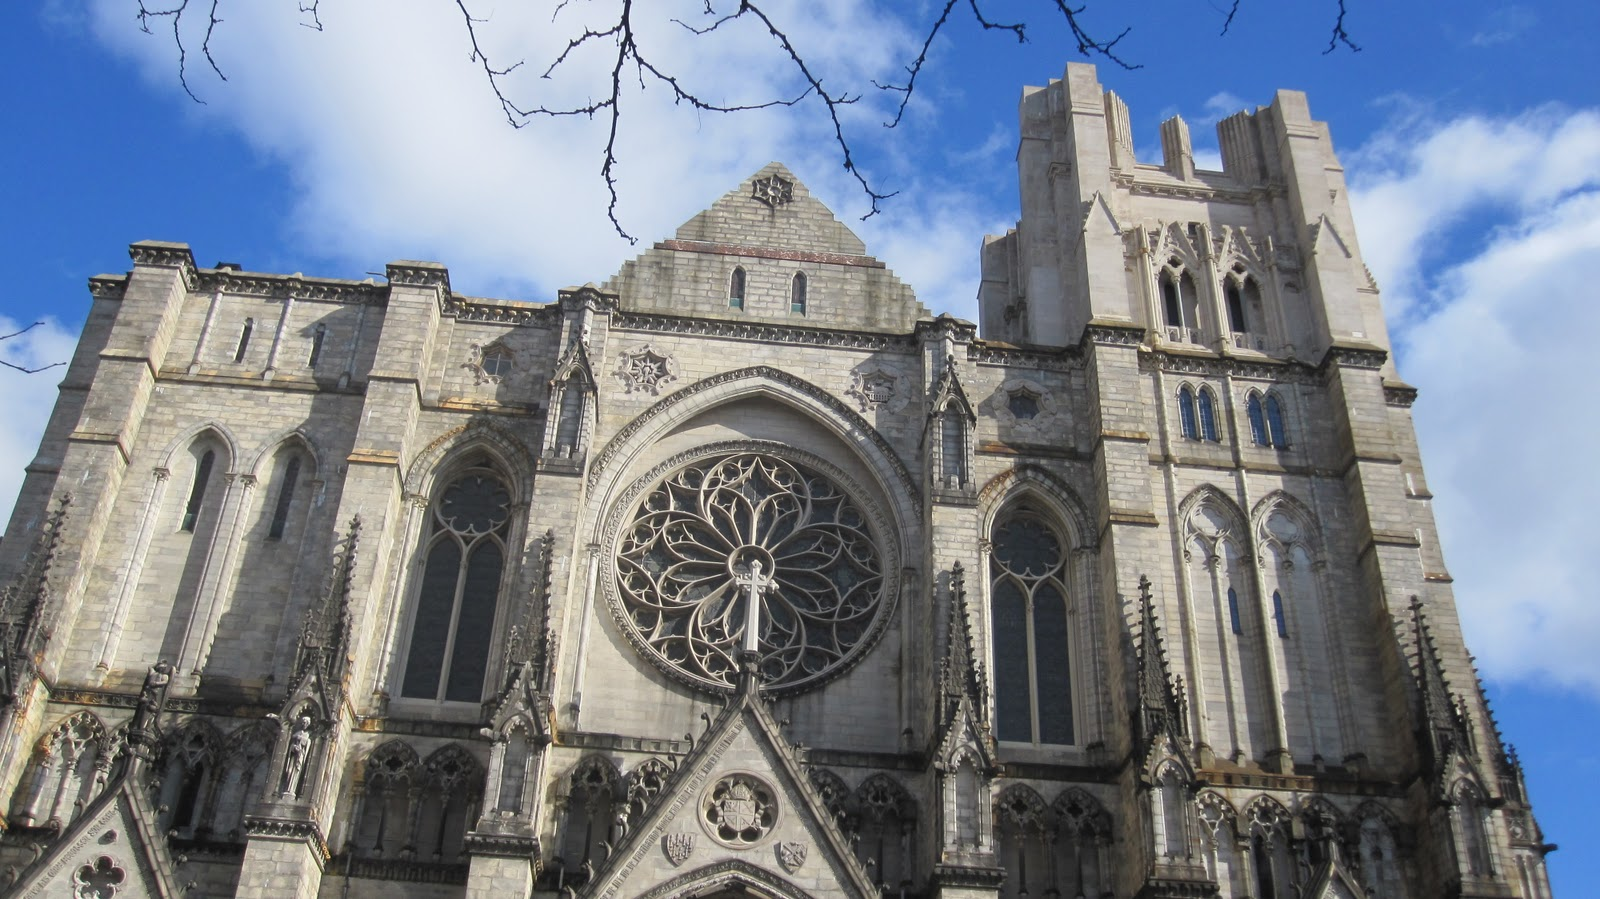 st john the divine The cathedral church of saint john the divine, the mother church of the episcopal diocese of new york and the seat of its bishop, is chartered as a house of prayer for all people and a unifying center of intellectual light and leadership.